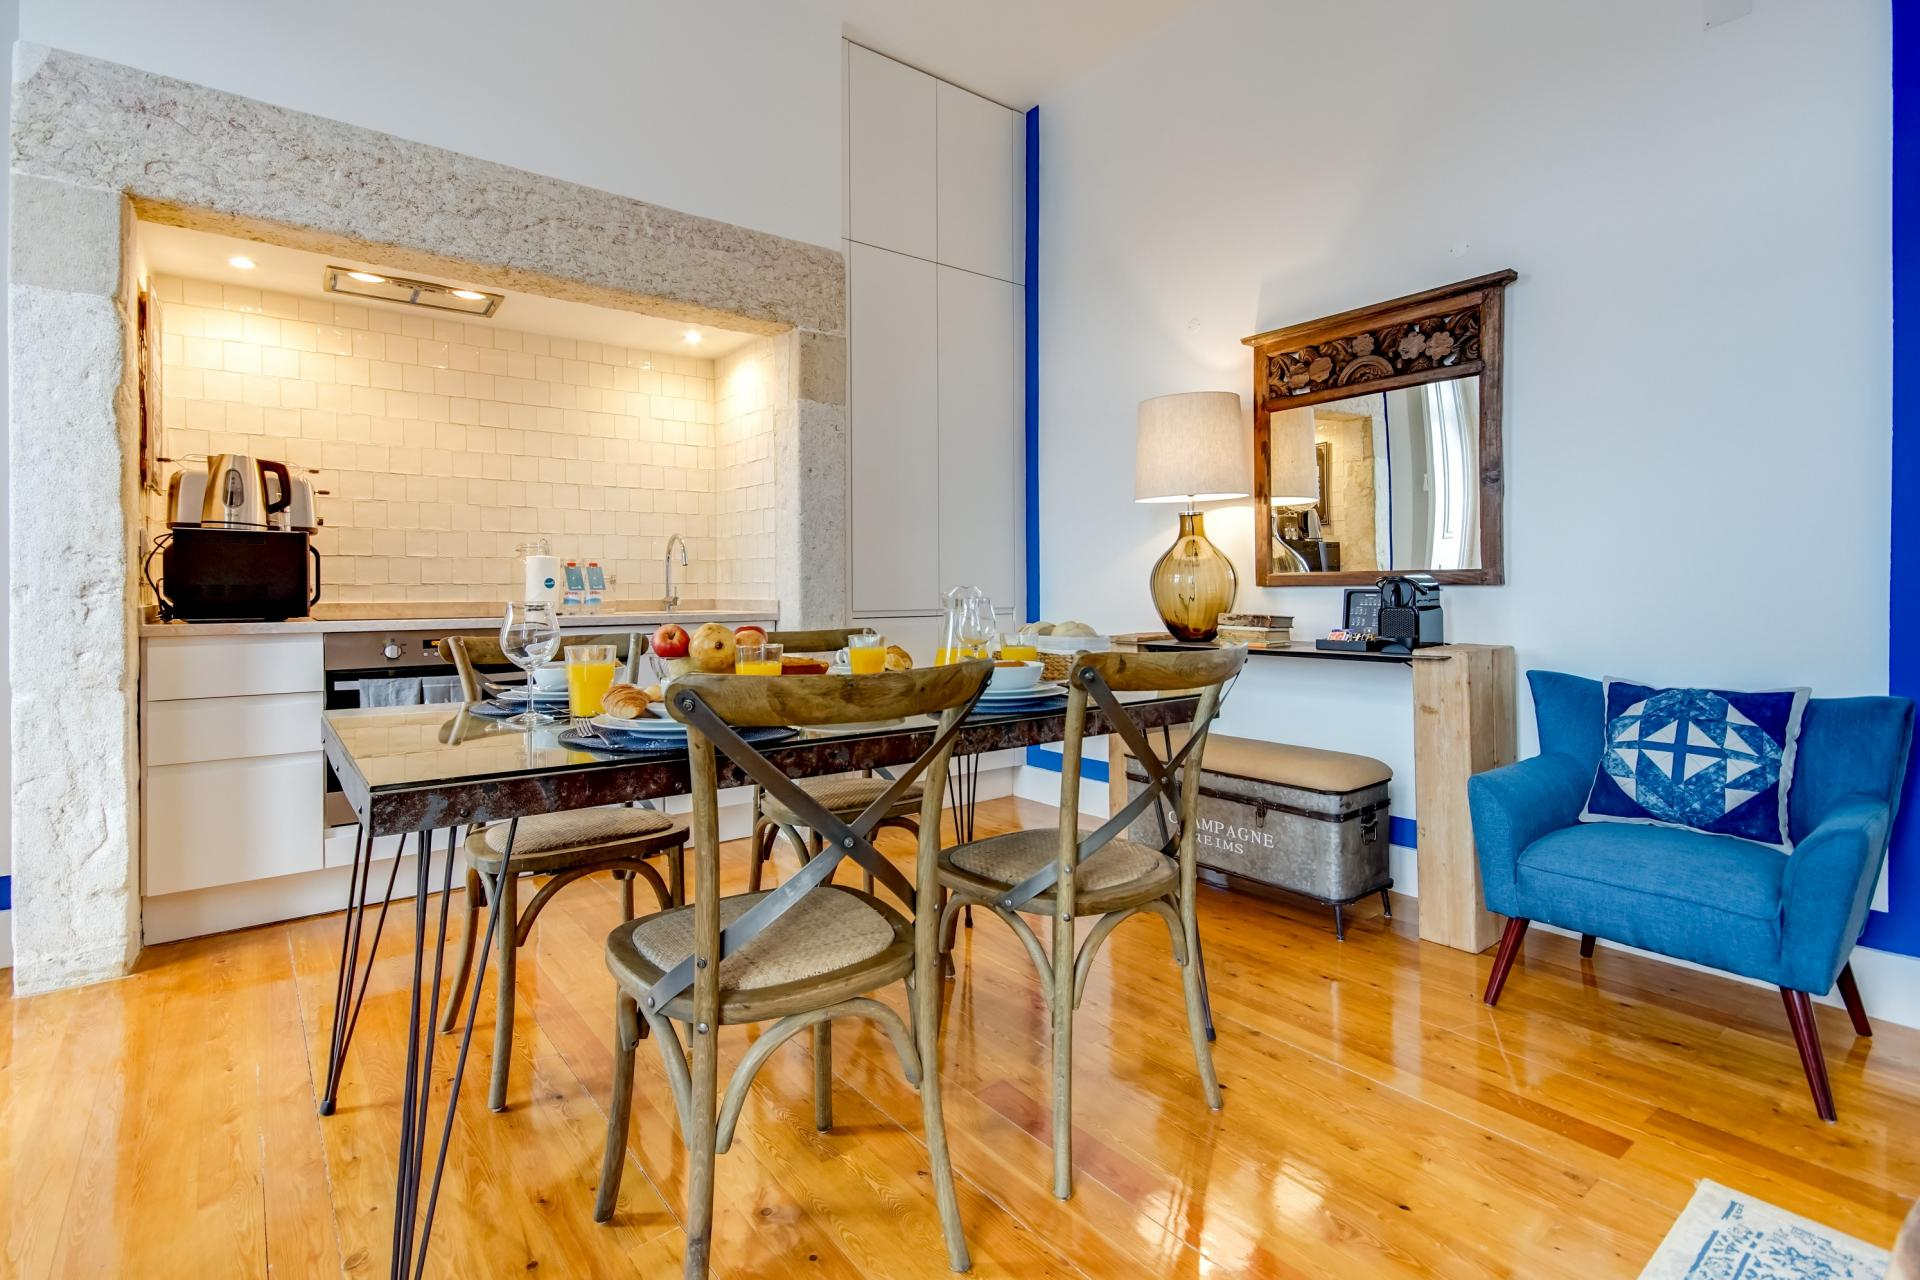 Stylish kitchen at Emenda Deluxe Apartment - Citybase Apartments